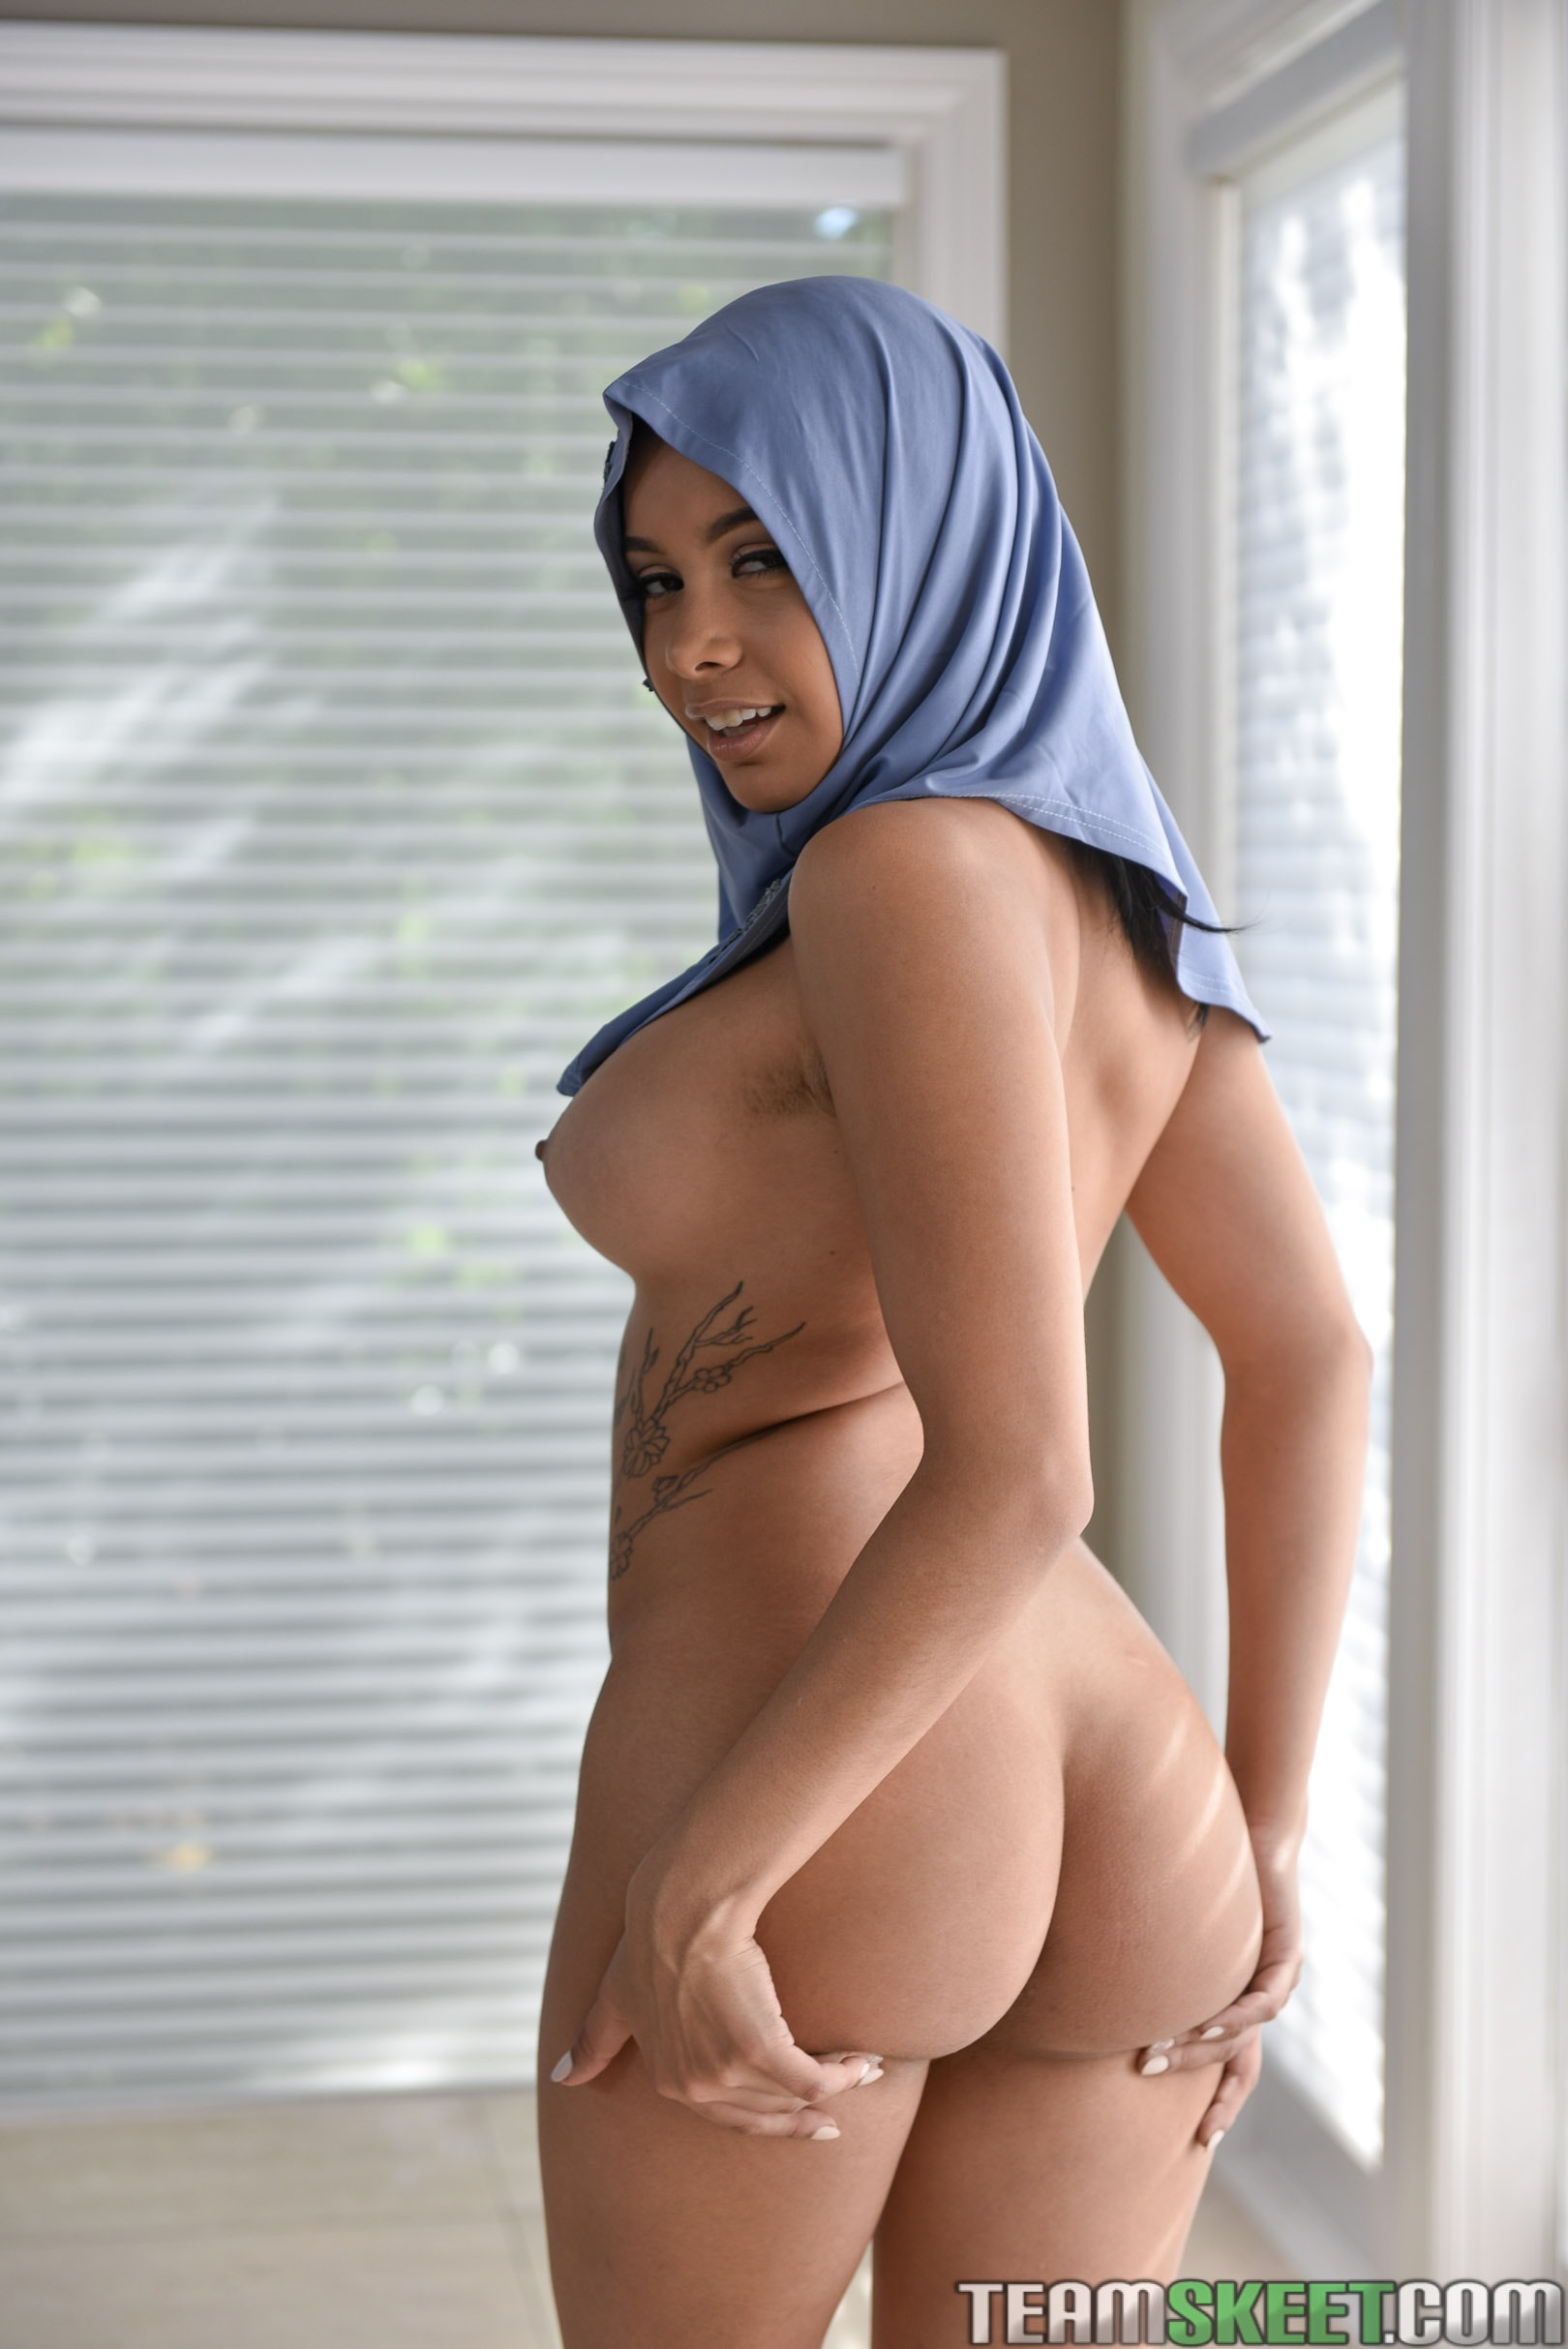 Team Skeet 'Teenage Anal In Her Hijab' starring Aaliyah Hadid (Photo 48)